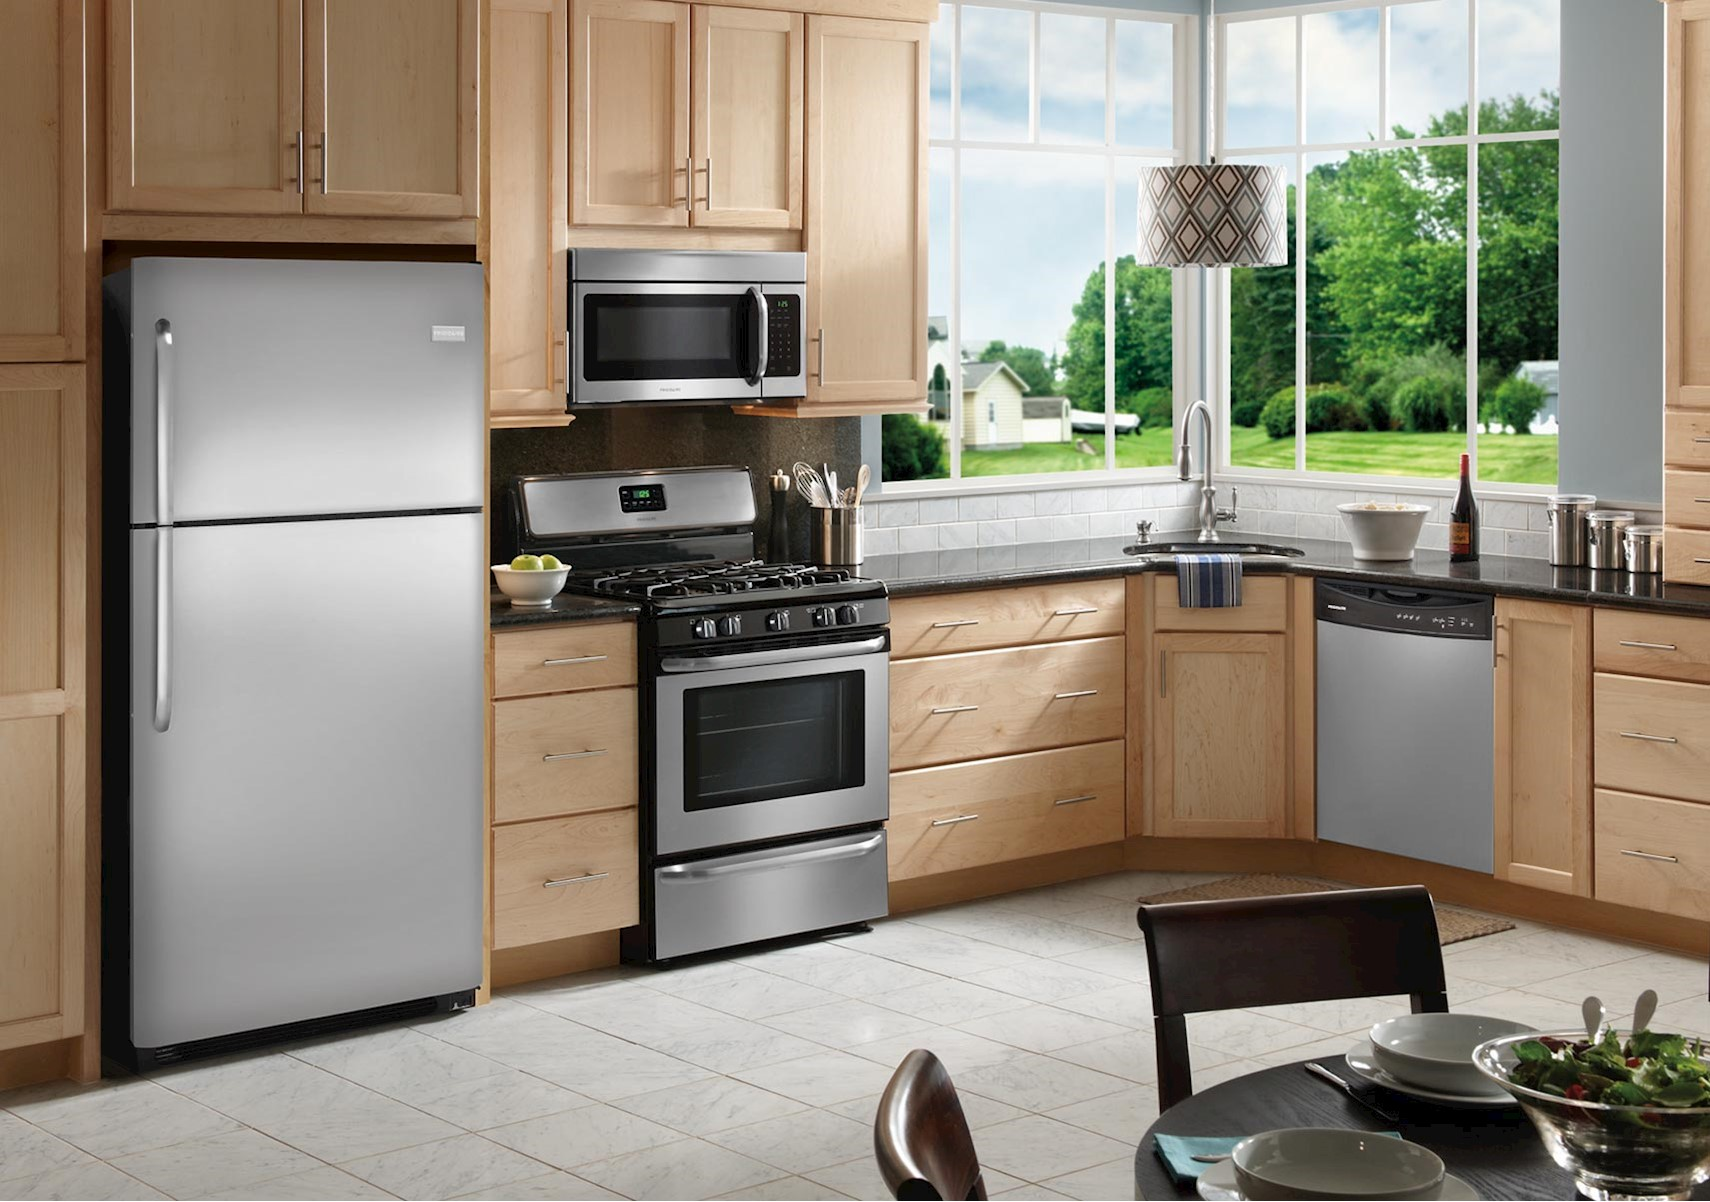 Frigidaire - Give your kitchen a professional polish with our stainless steel finish that resists fingerprints and is easy to clean.